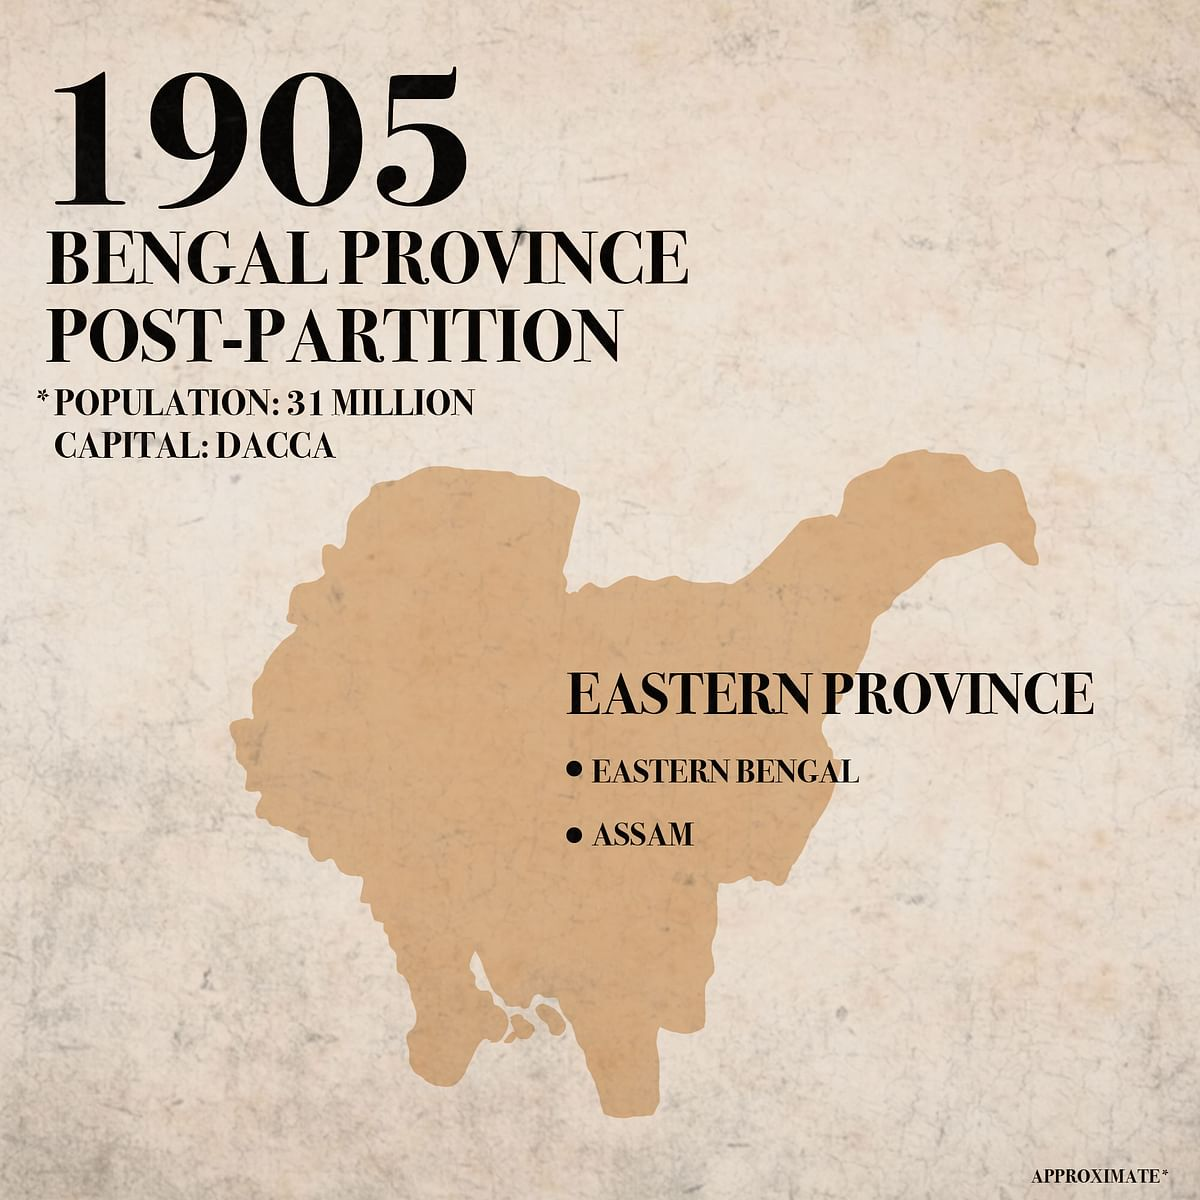 Eastern Province after partition